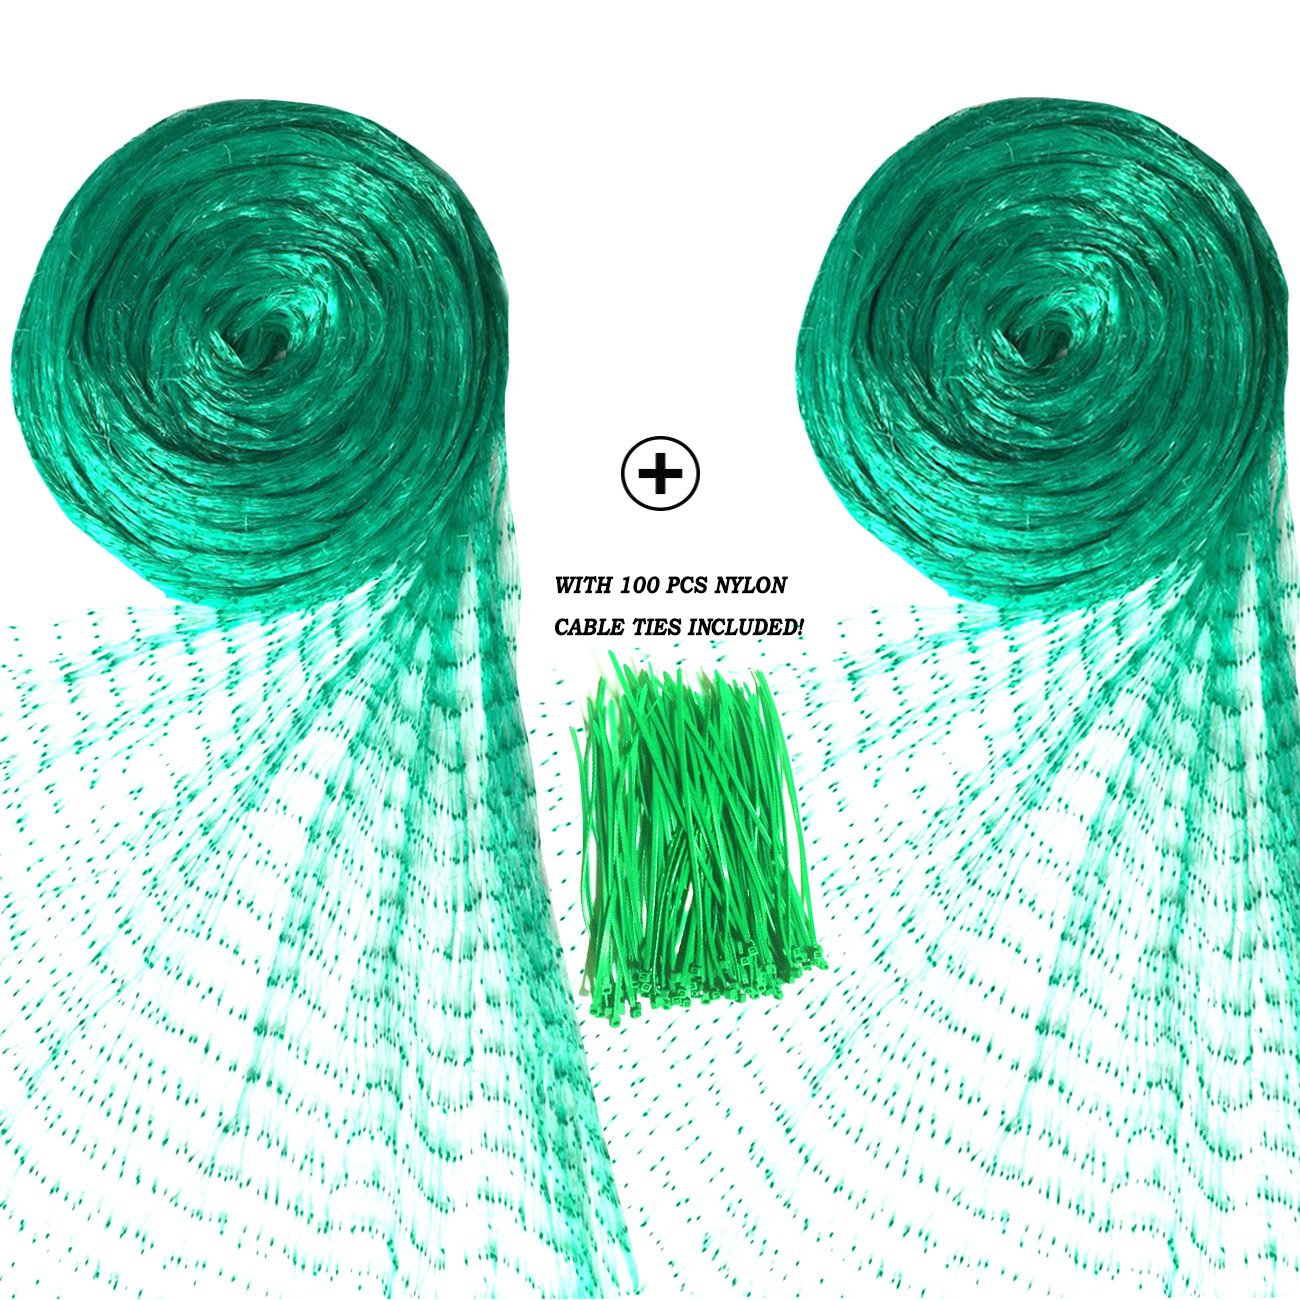 Senneny 2 Pack Bird Netting, 20Ft x 6.5Ft Anti-Bird Netting 100 Pcs Nylon Cable Ties, Green Garden Netting Protecting Plants Fruit Trees from Rodents Birds Deer